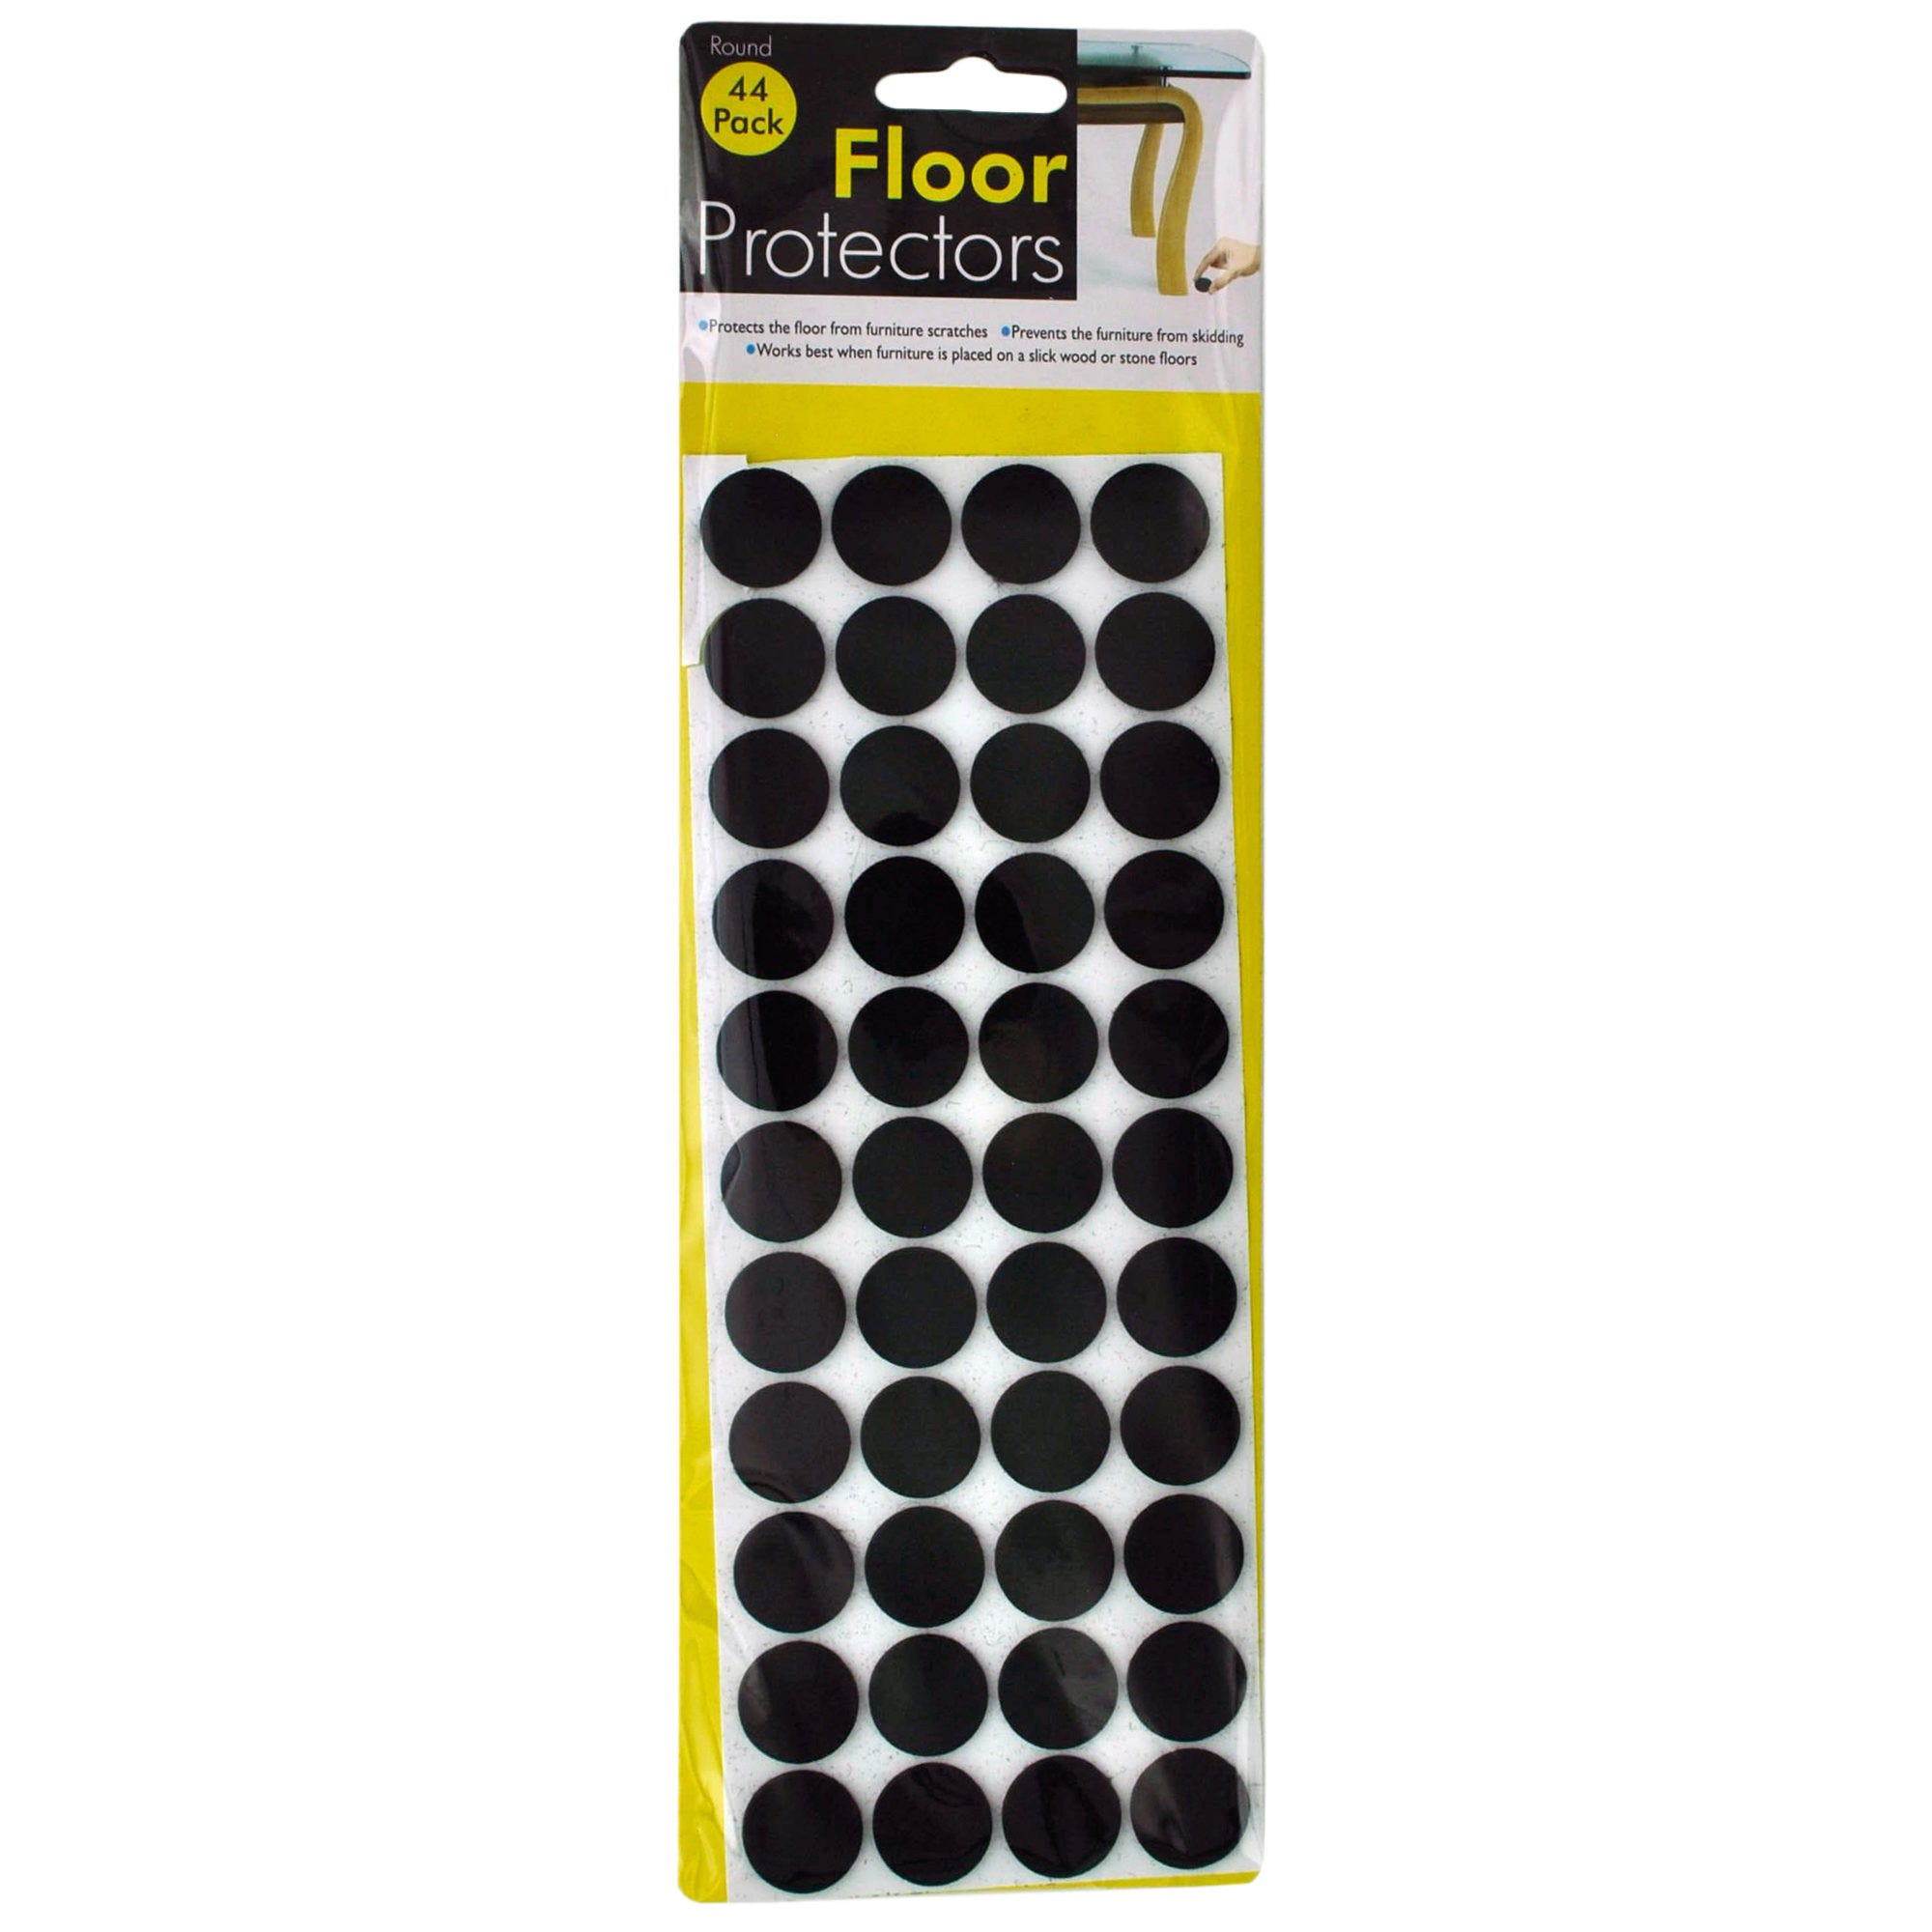 Self-Adhesive Round Floor Protectors- Qty 24